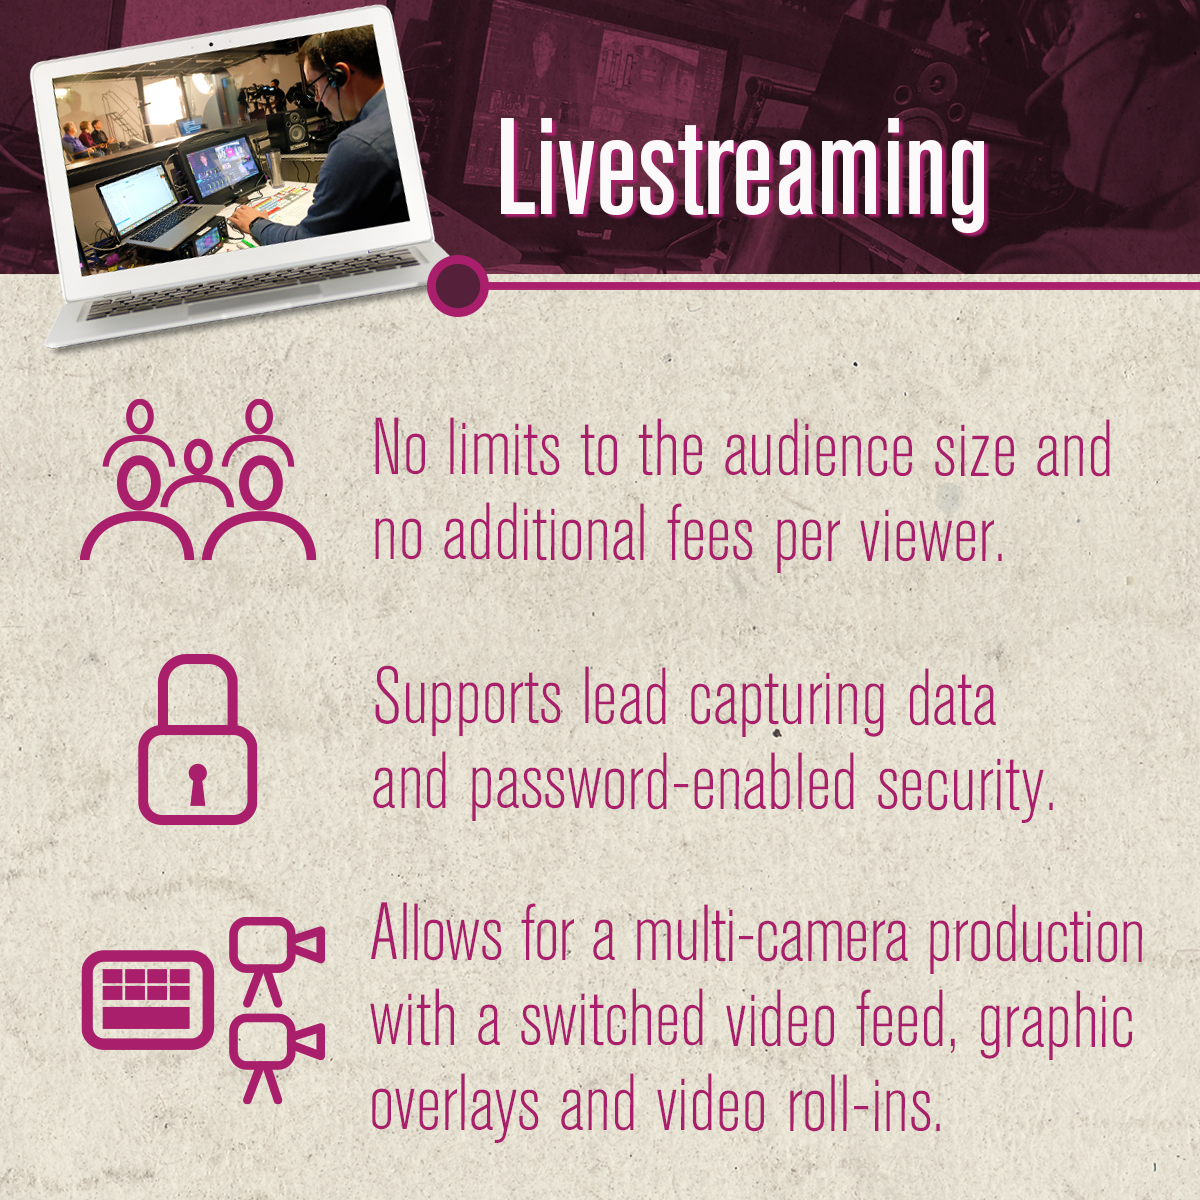 Livestreaming_infographic_v1